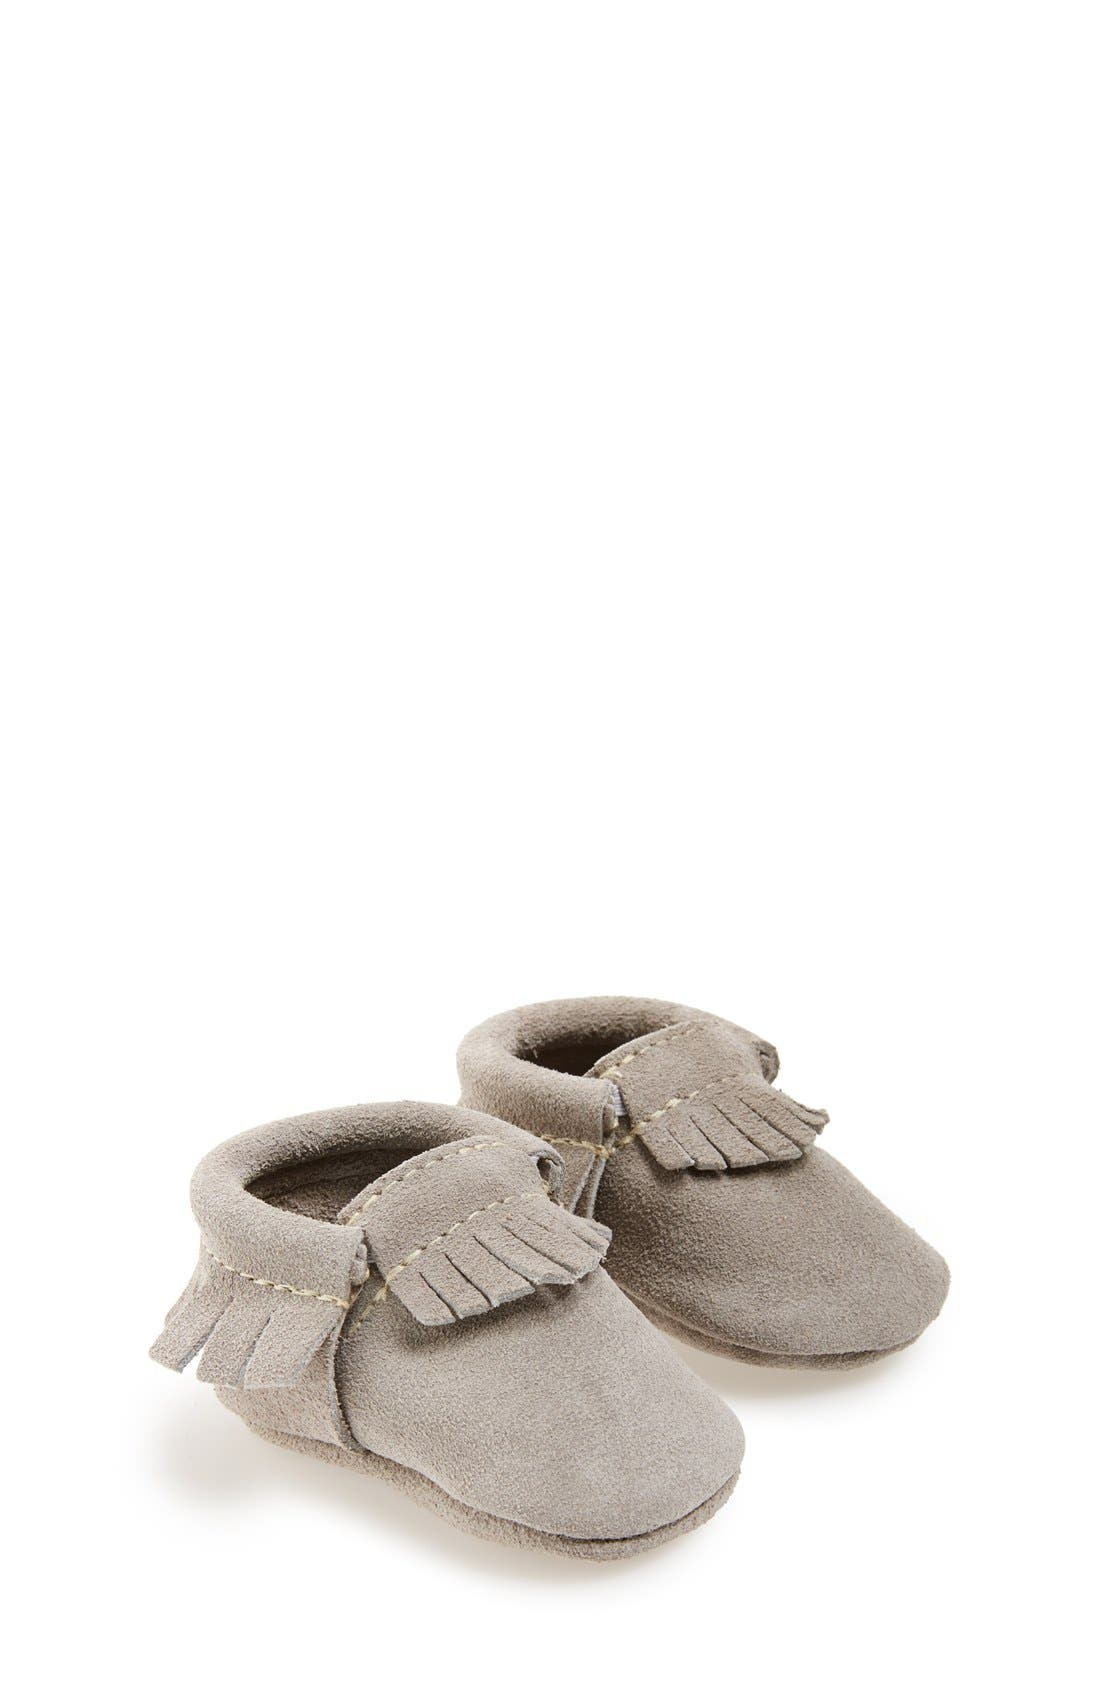 Main Image - Freshly Picked Suede Moccasin (Baby, Walker & Toddler)